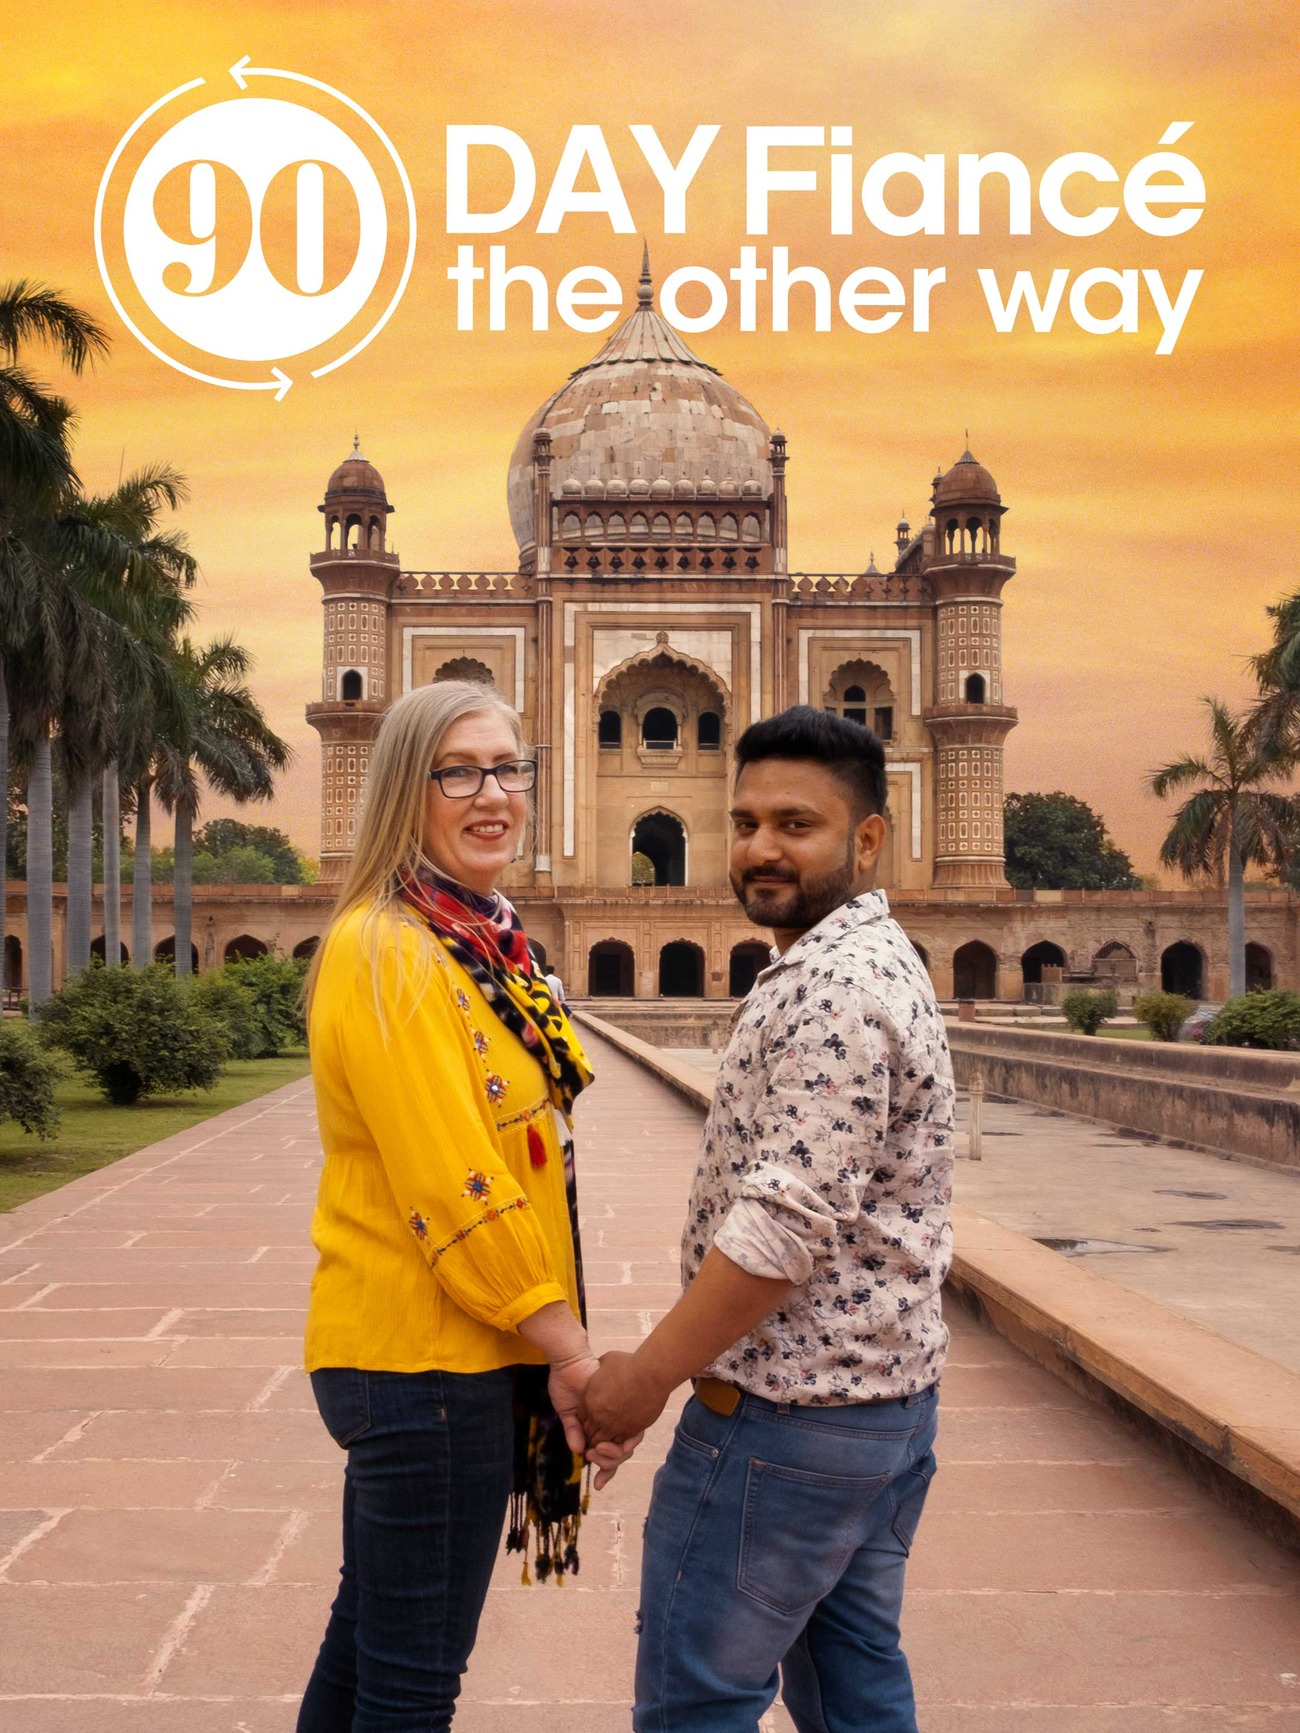 90 Day Fiancé: The Other Way - Season 1